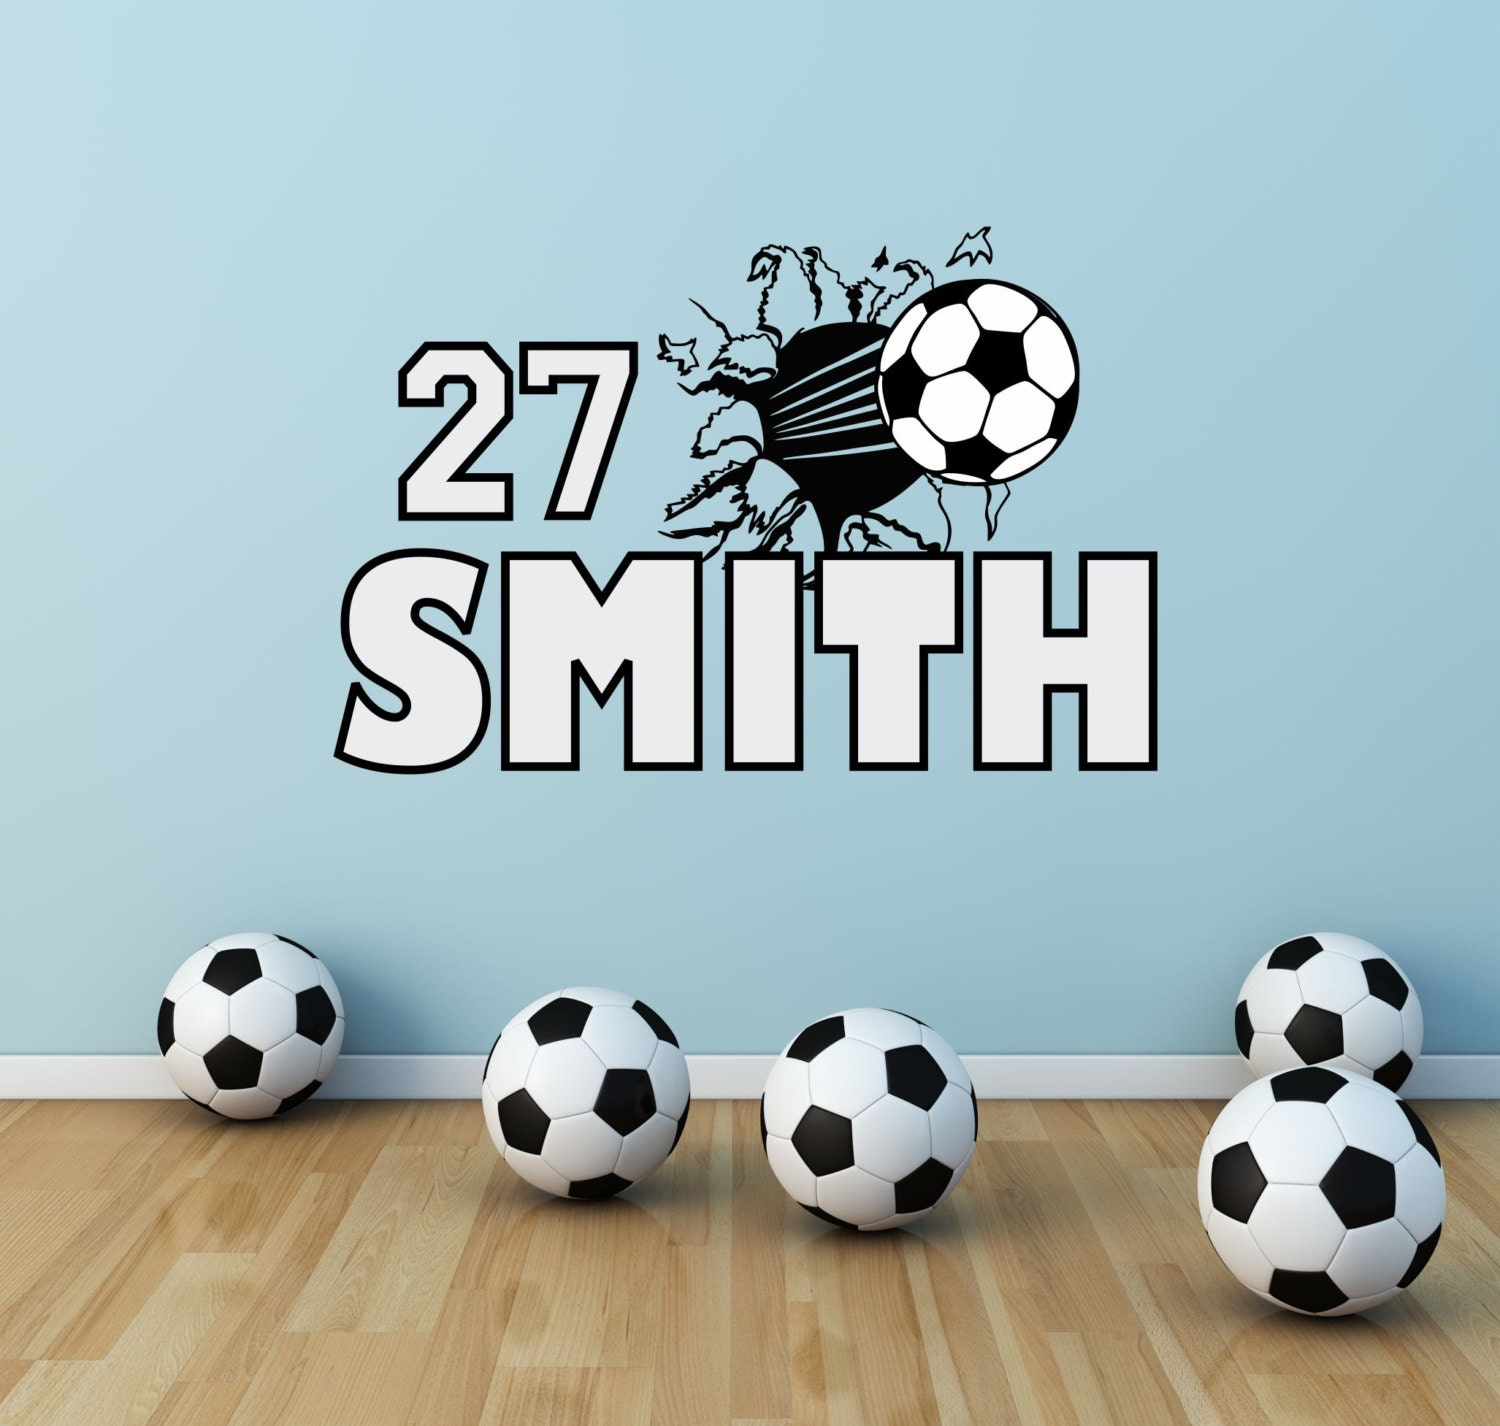 Soccer Wall Decal Soccer Name Decal Soccer Decor Football